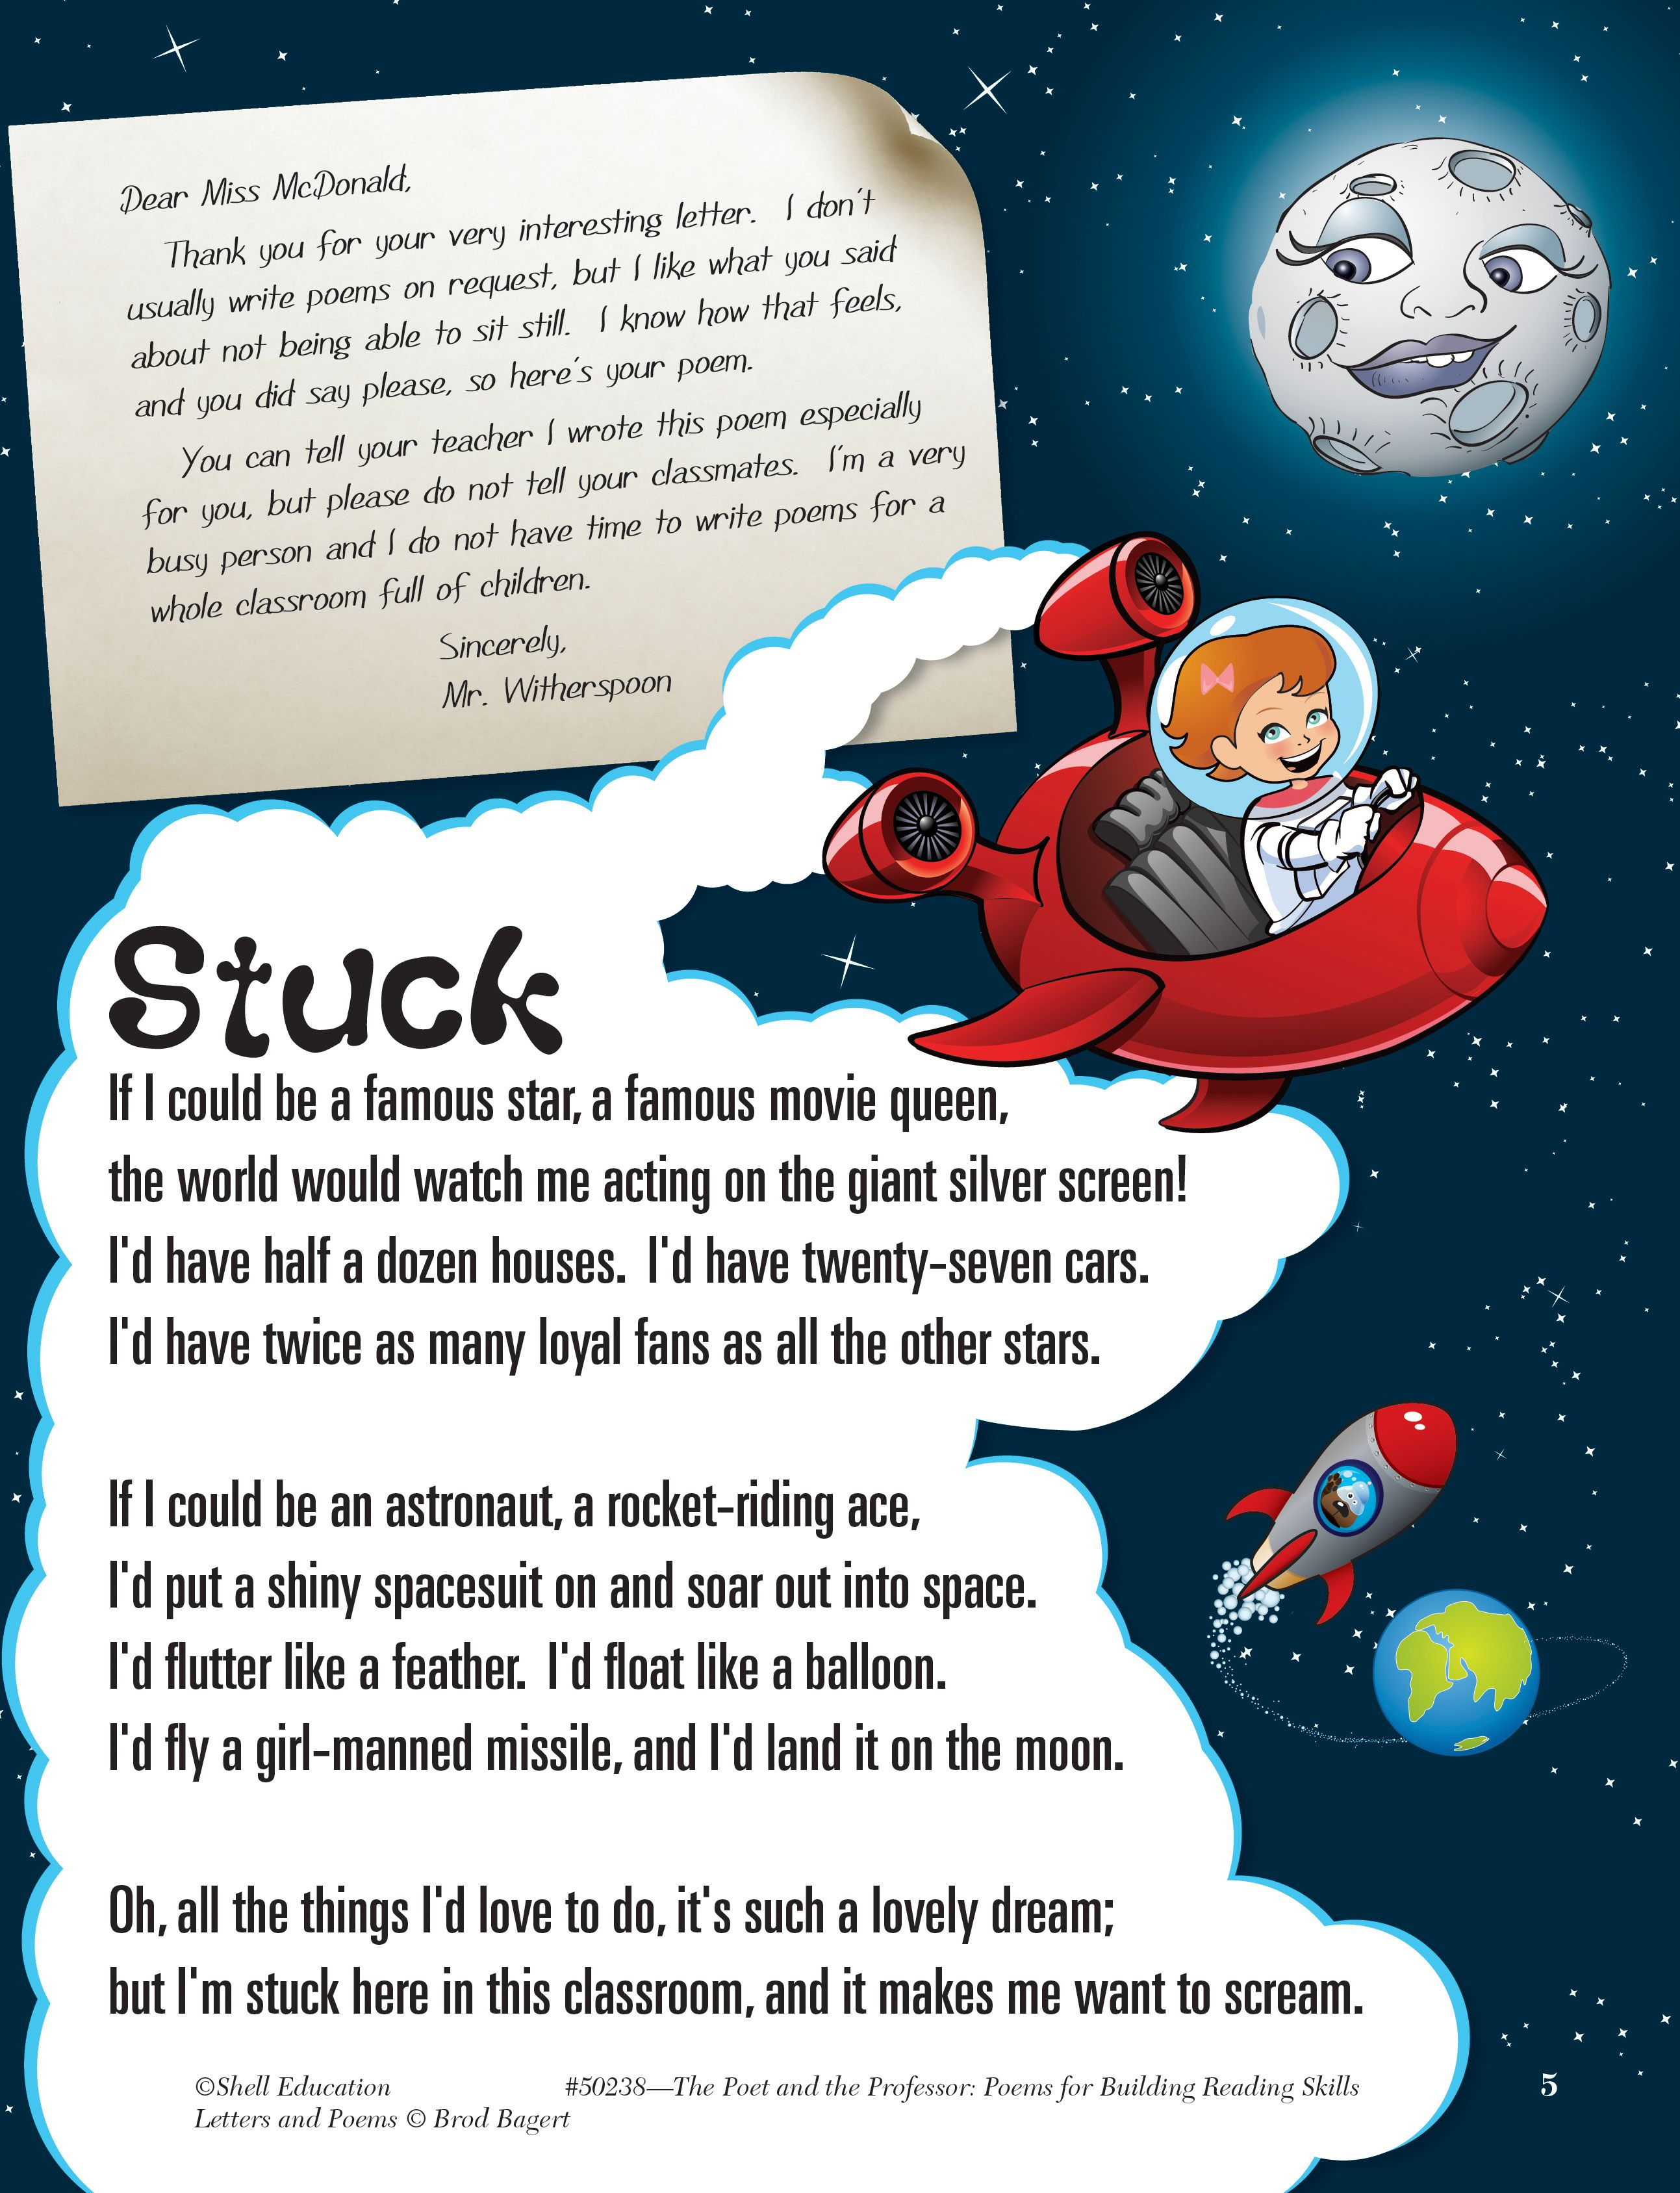 Make Poetry Fun For 4th Grade Reader With Poem Presented In A Whole New Light Coauthored By W Teacher Created Material Student Encouragement Voice Bright Star Paraphrase